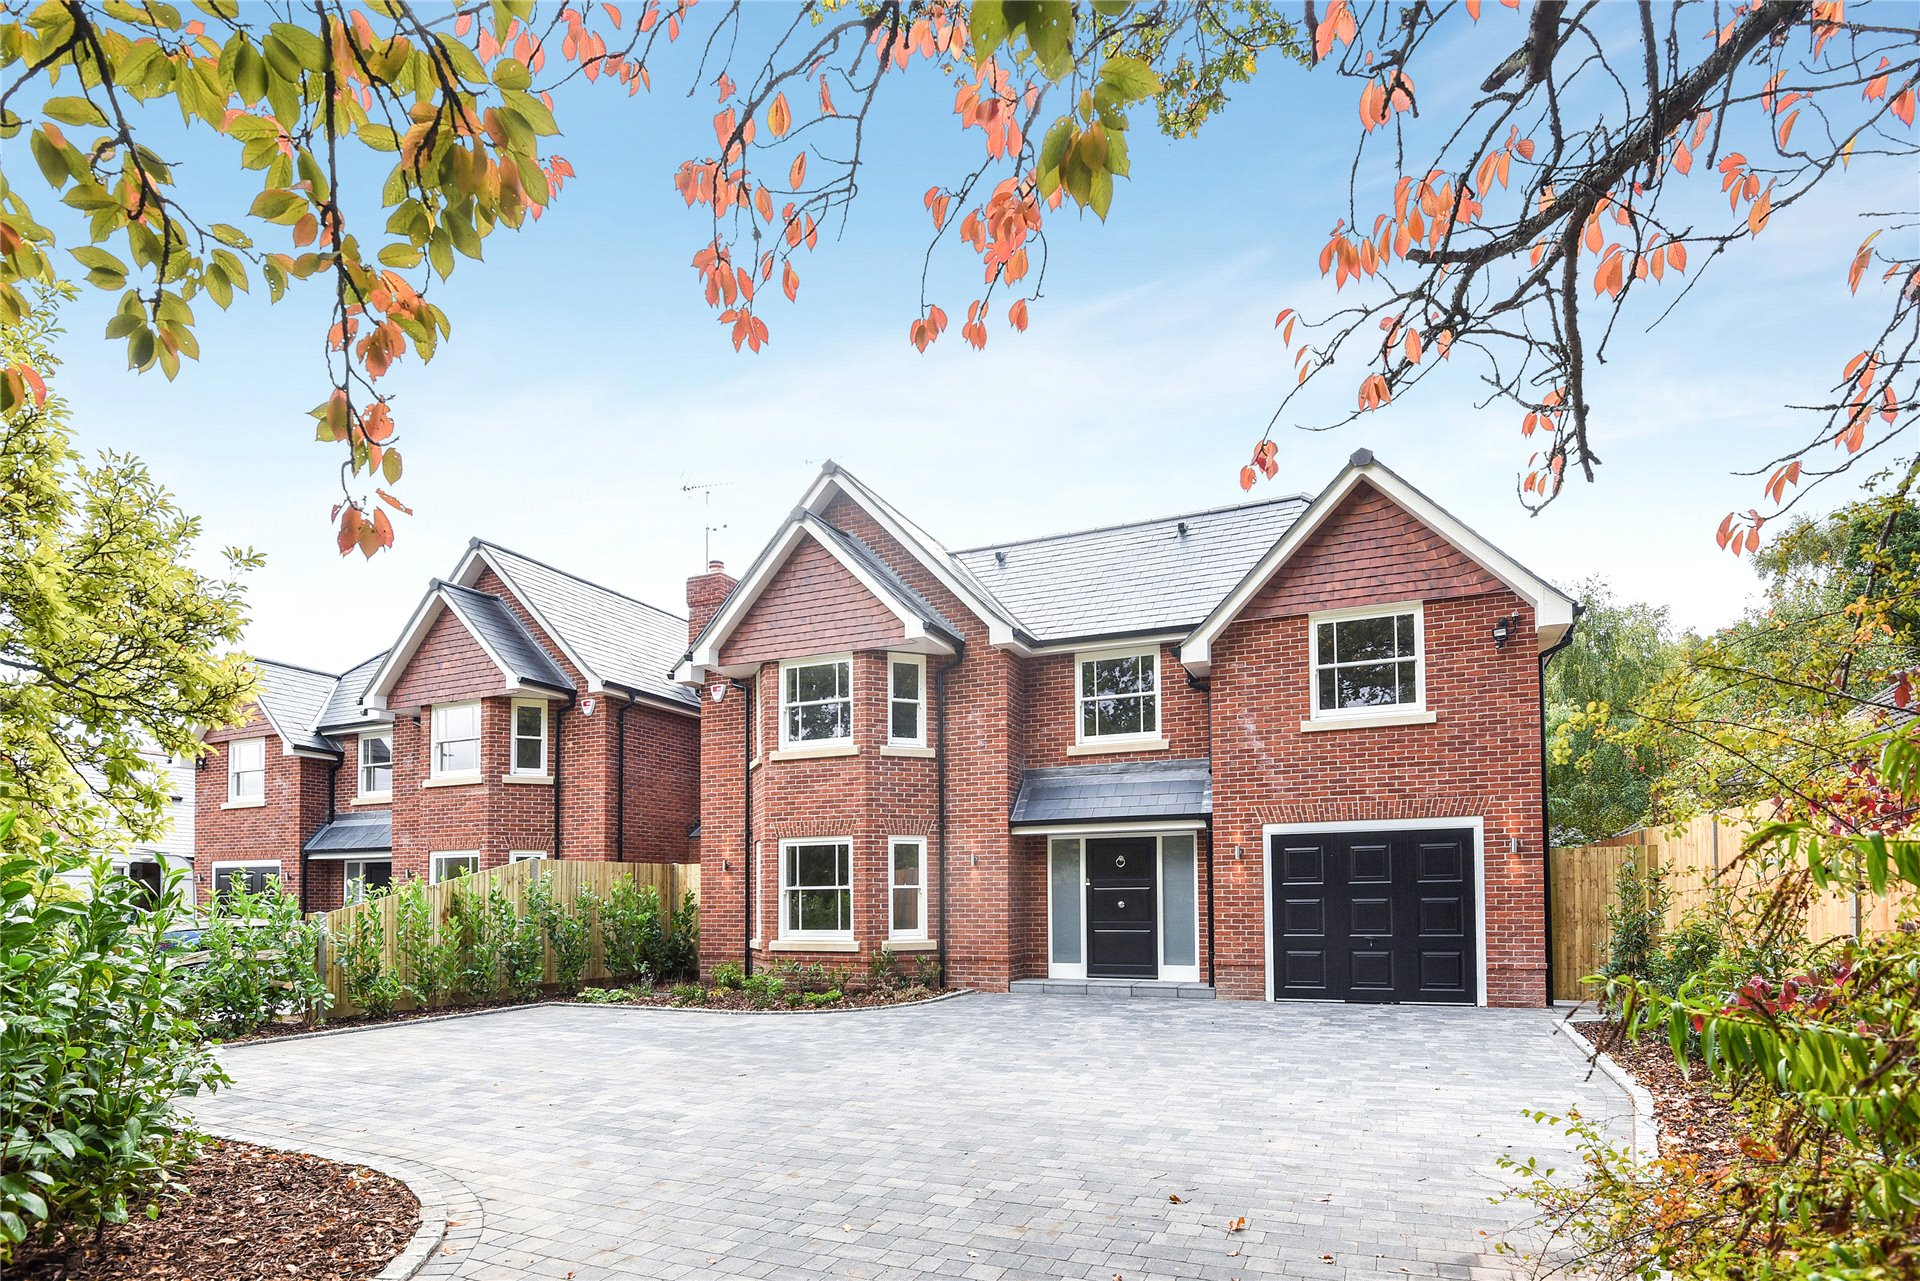 Nine Mile Ride Finchampstead Wokingham Berkshire Rg40 5 Bedroom Detached Full Brick Brand New Home On Wiring House To Garage For Sale 48719113 Primelocation